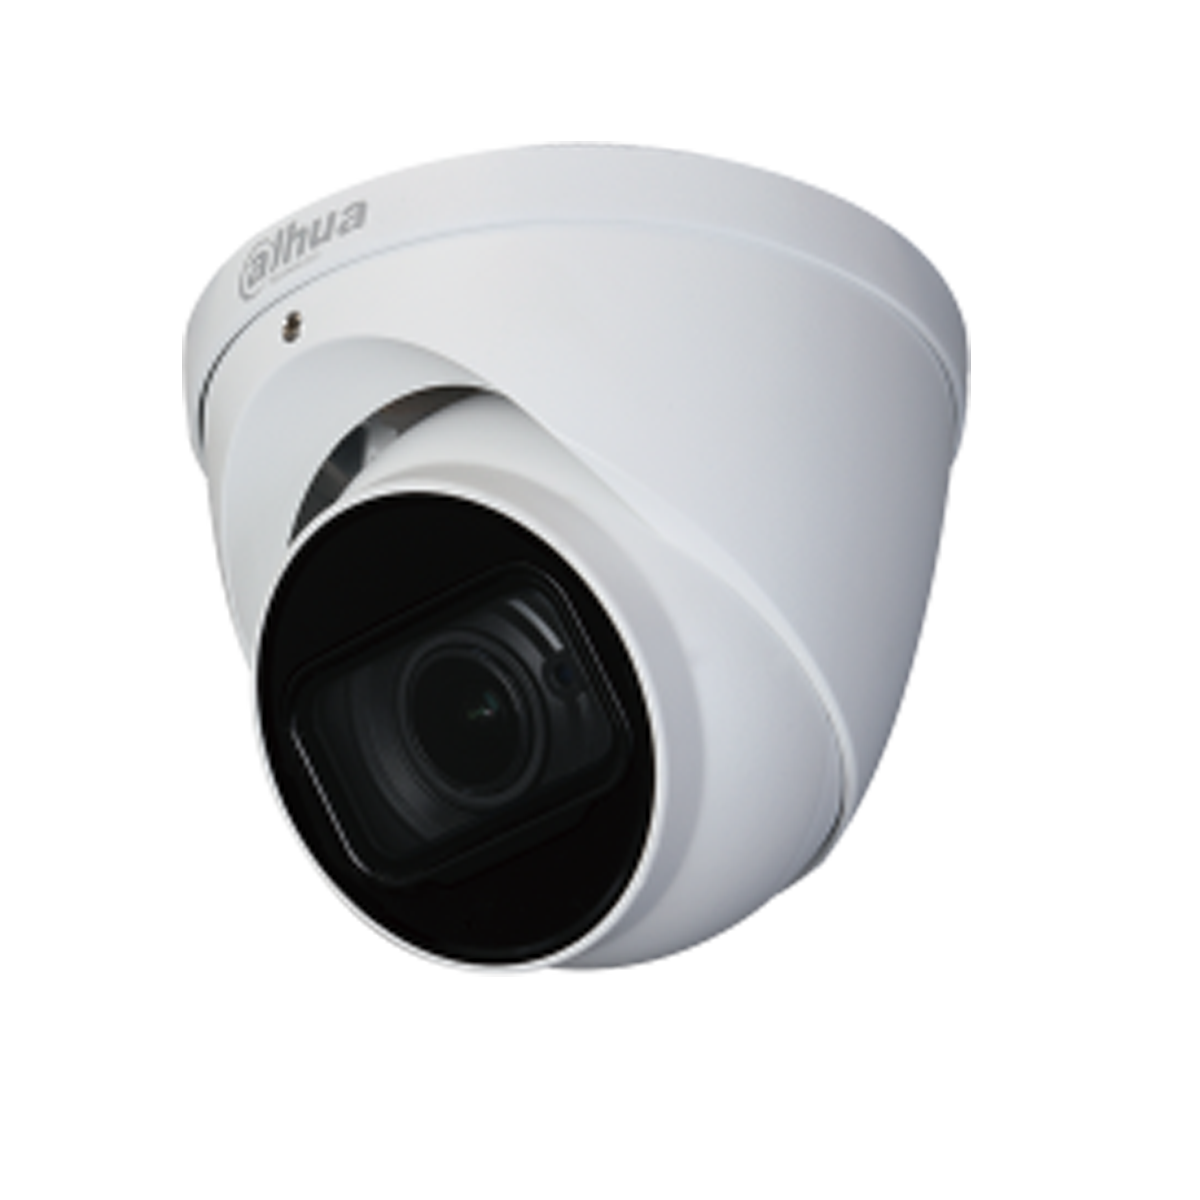 Dome 2MP 4 Em 1 2.7-12mm HDW1230T-Z-A